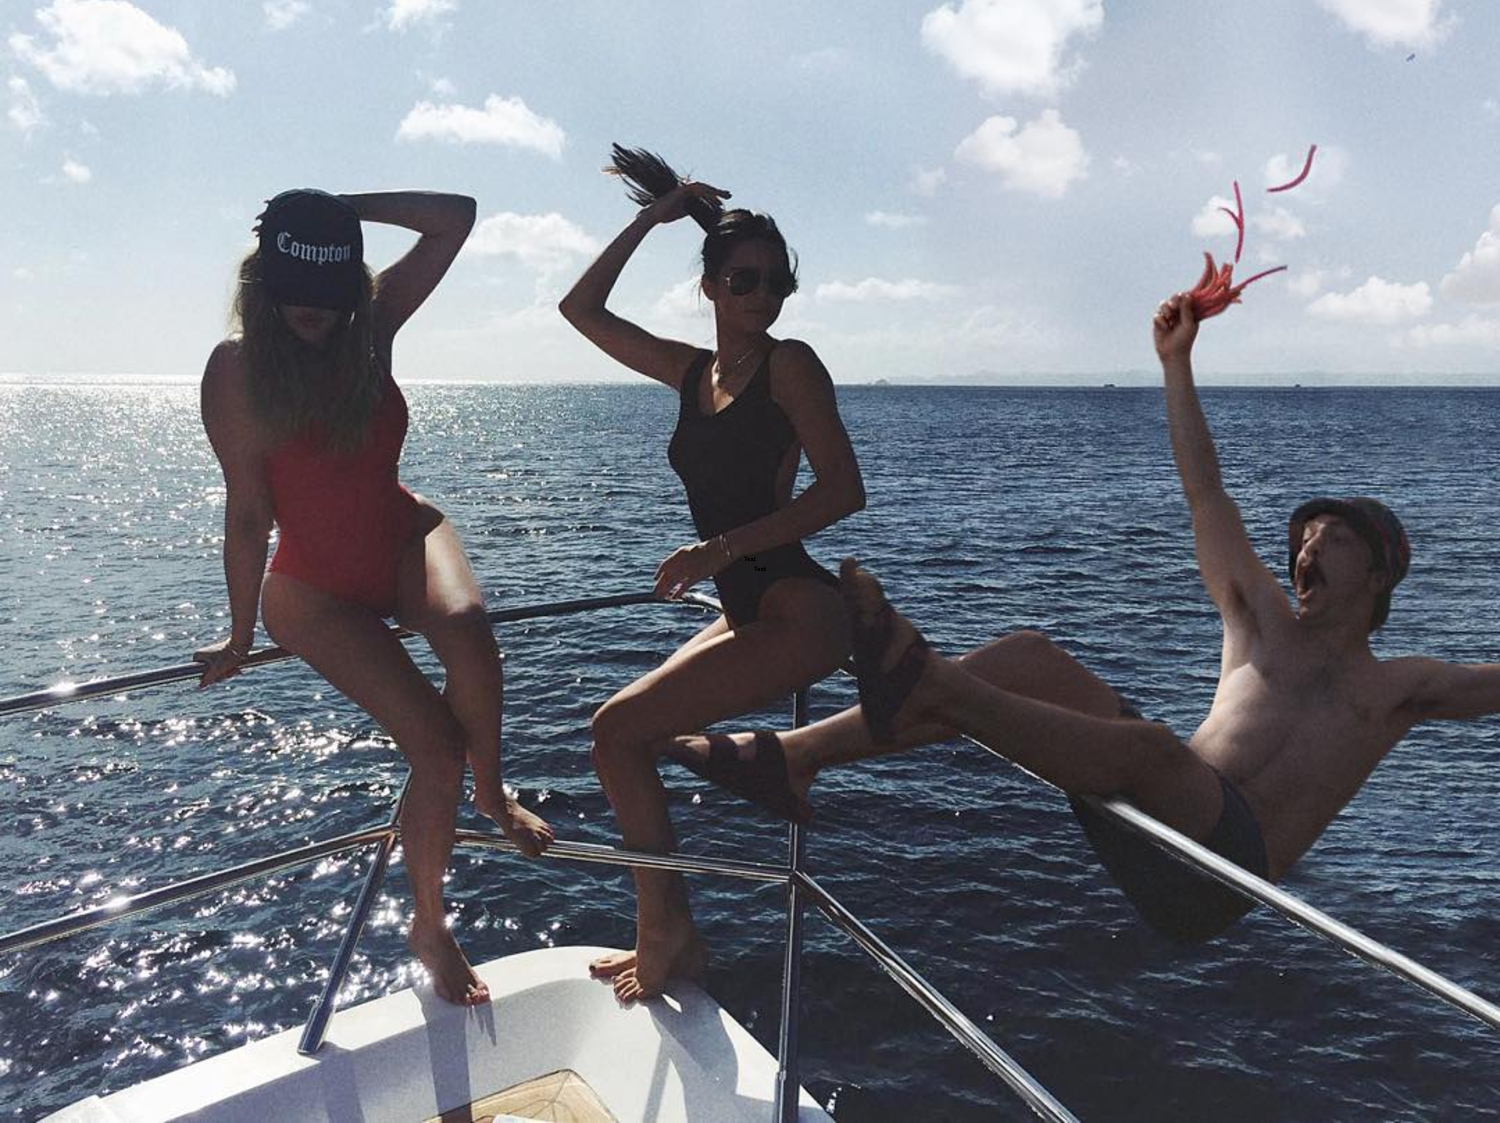 Kirby Jenner Photoshopped into Kendall Jenner Instagram post